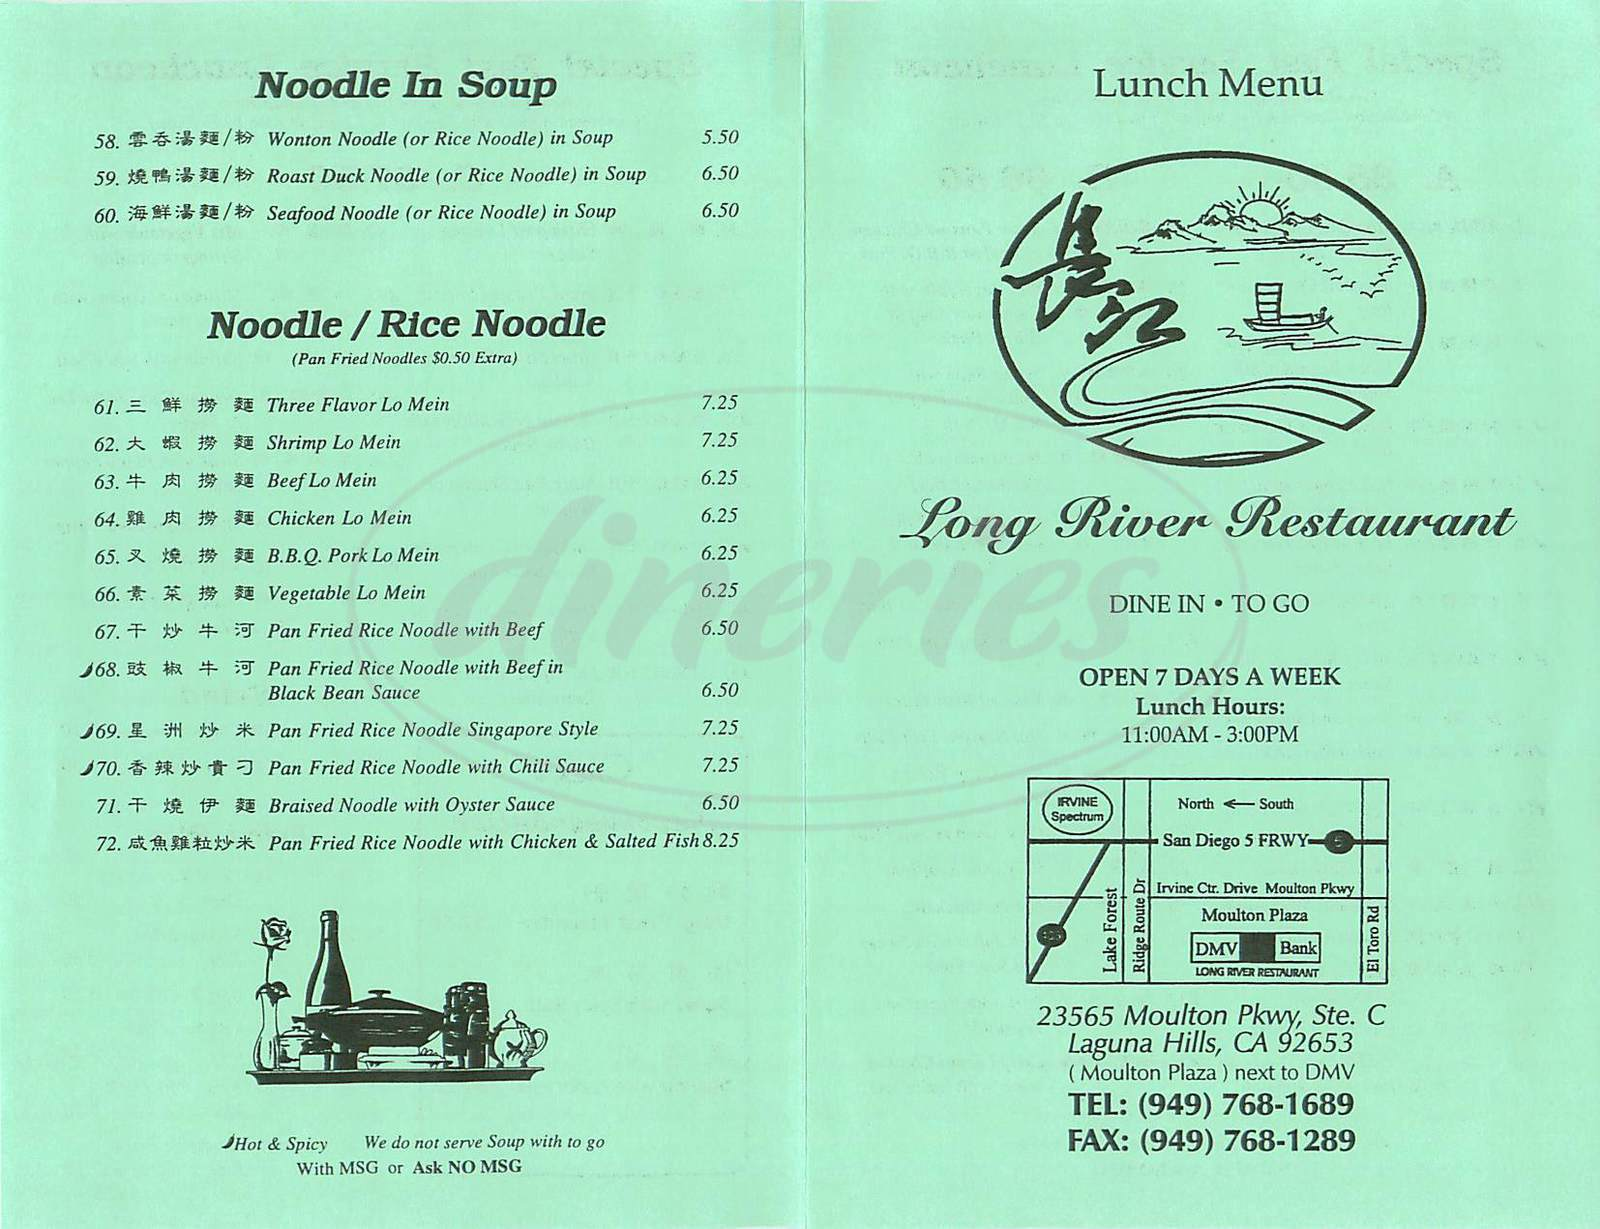 menu for Long River Restaurant